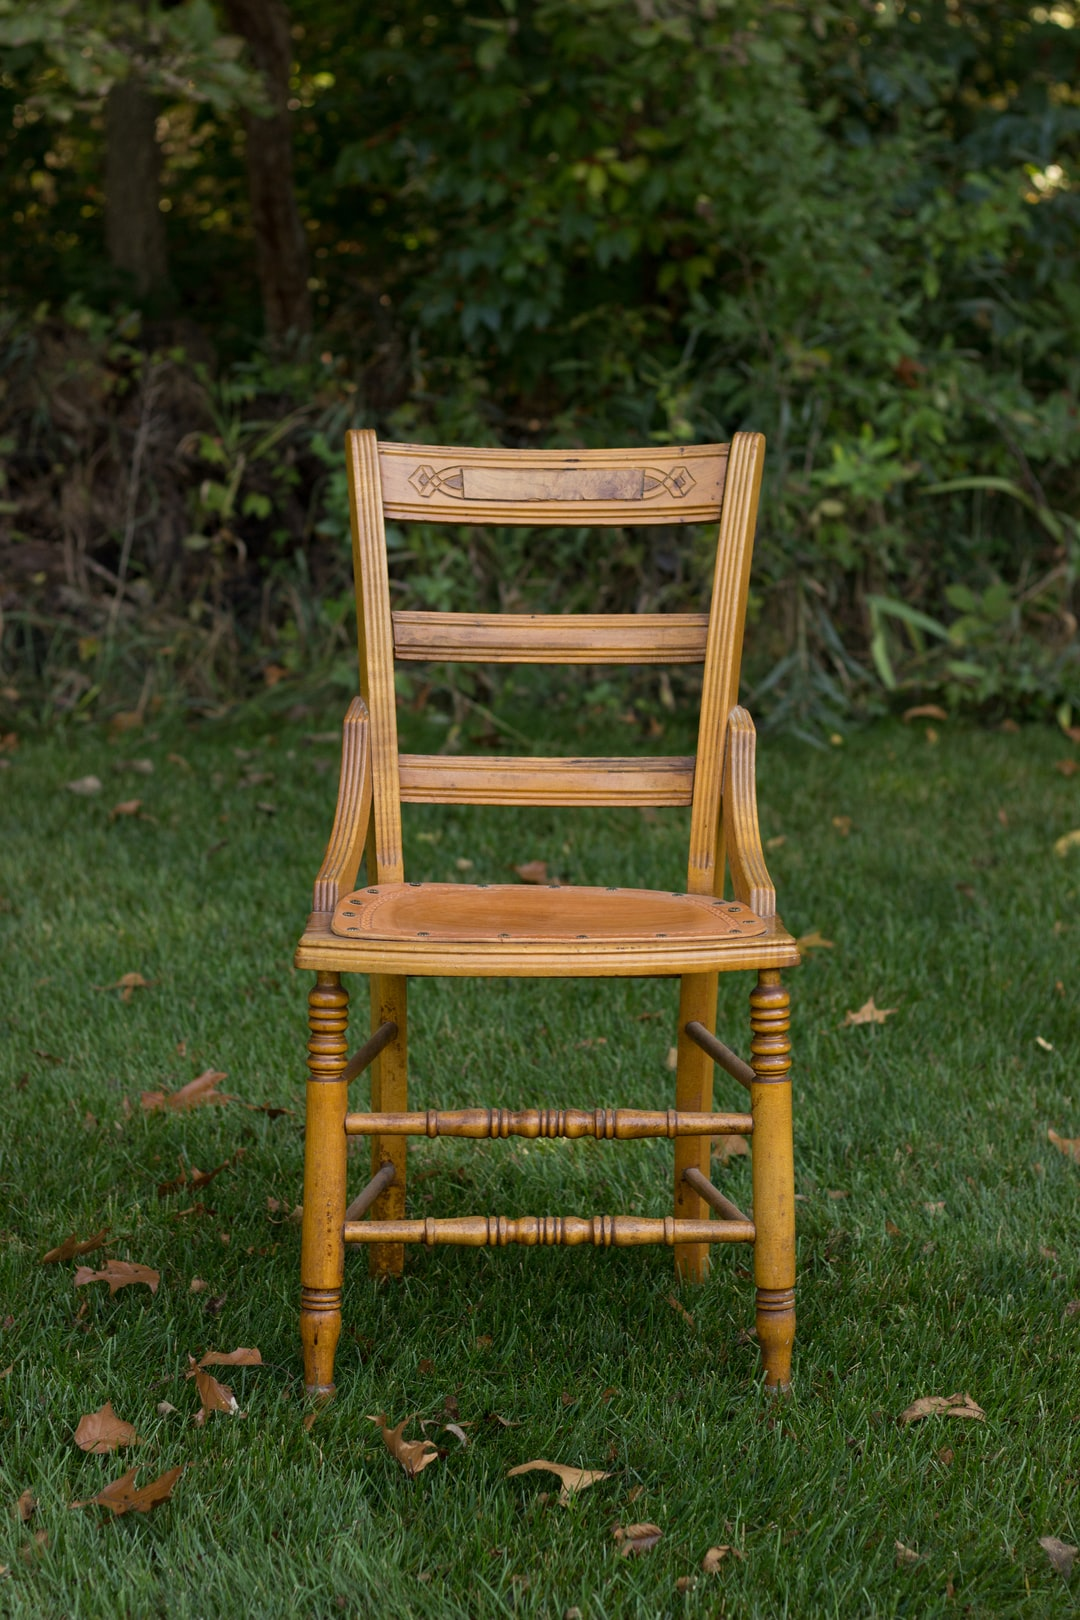 """I was getting some staging ready to take some newborn photos of my niece. This chair belonged to some of our ancestors. And it just looked so empty waiting there to be filled with the next generation. She is carrying on the name of two great-grandmothers just as we carry on using the chairs they used. The autumn season is just beginning, and those leaves tell a story of passing time, a change in a story."""